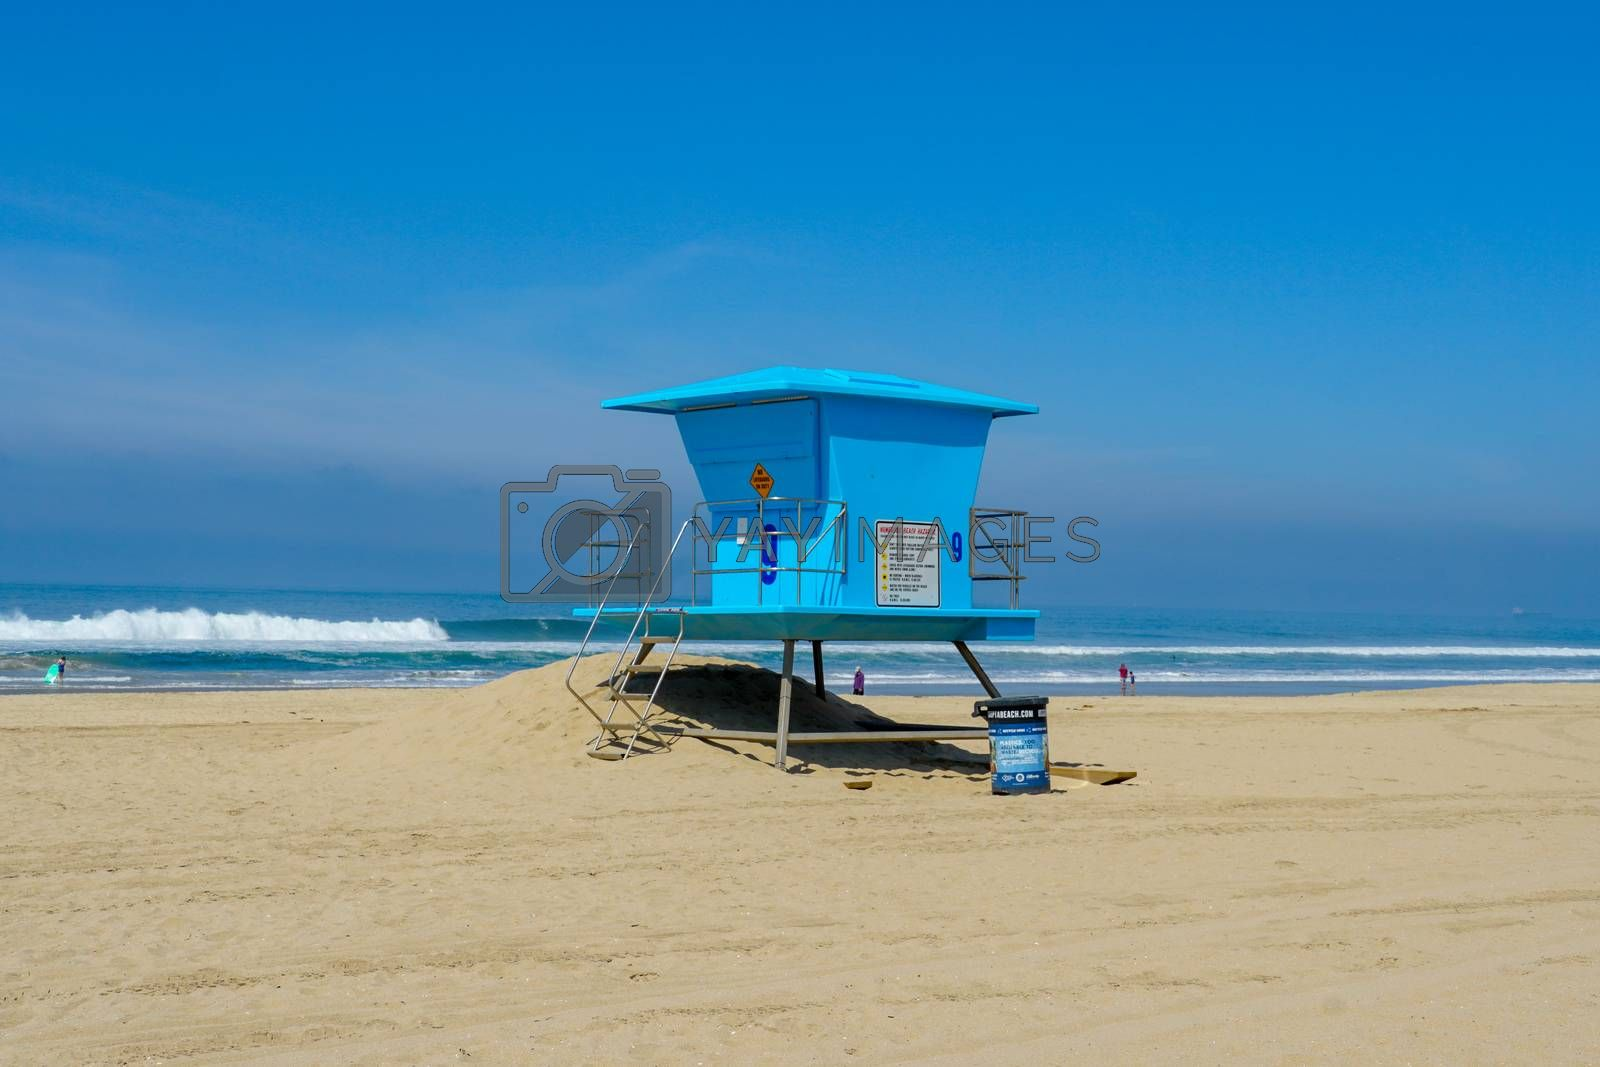 Lifeguard tower on the Huntington Beach during sunny day. by Bonandbon